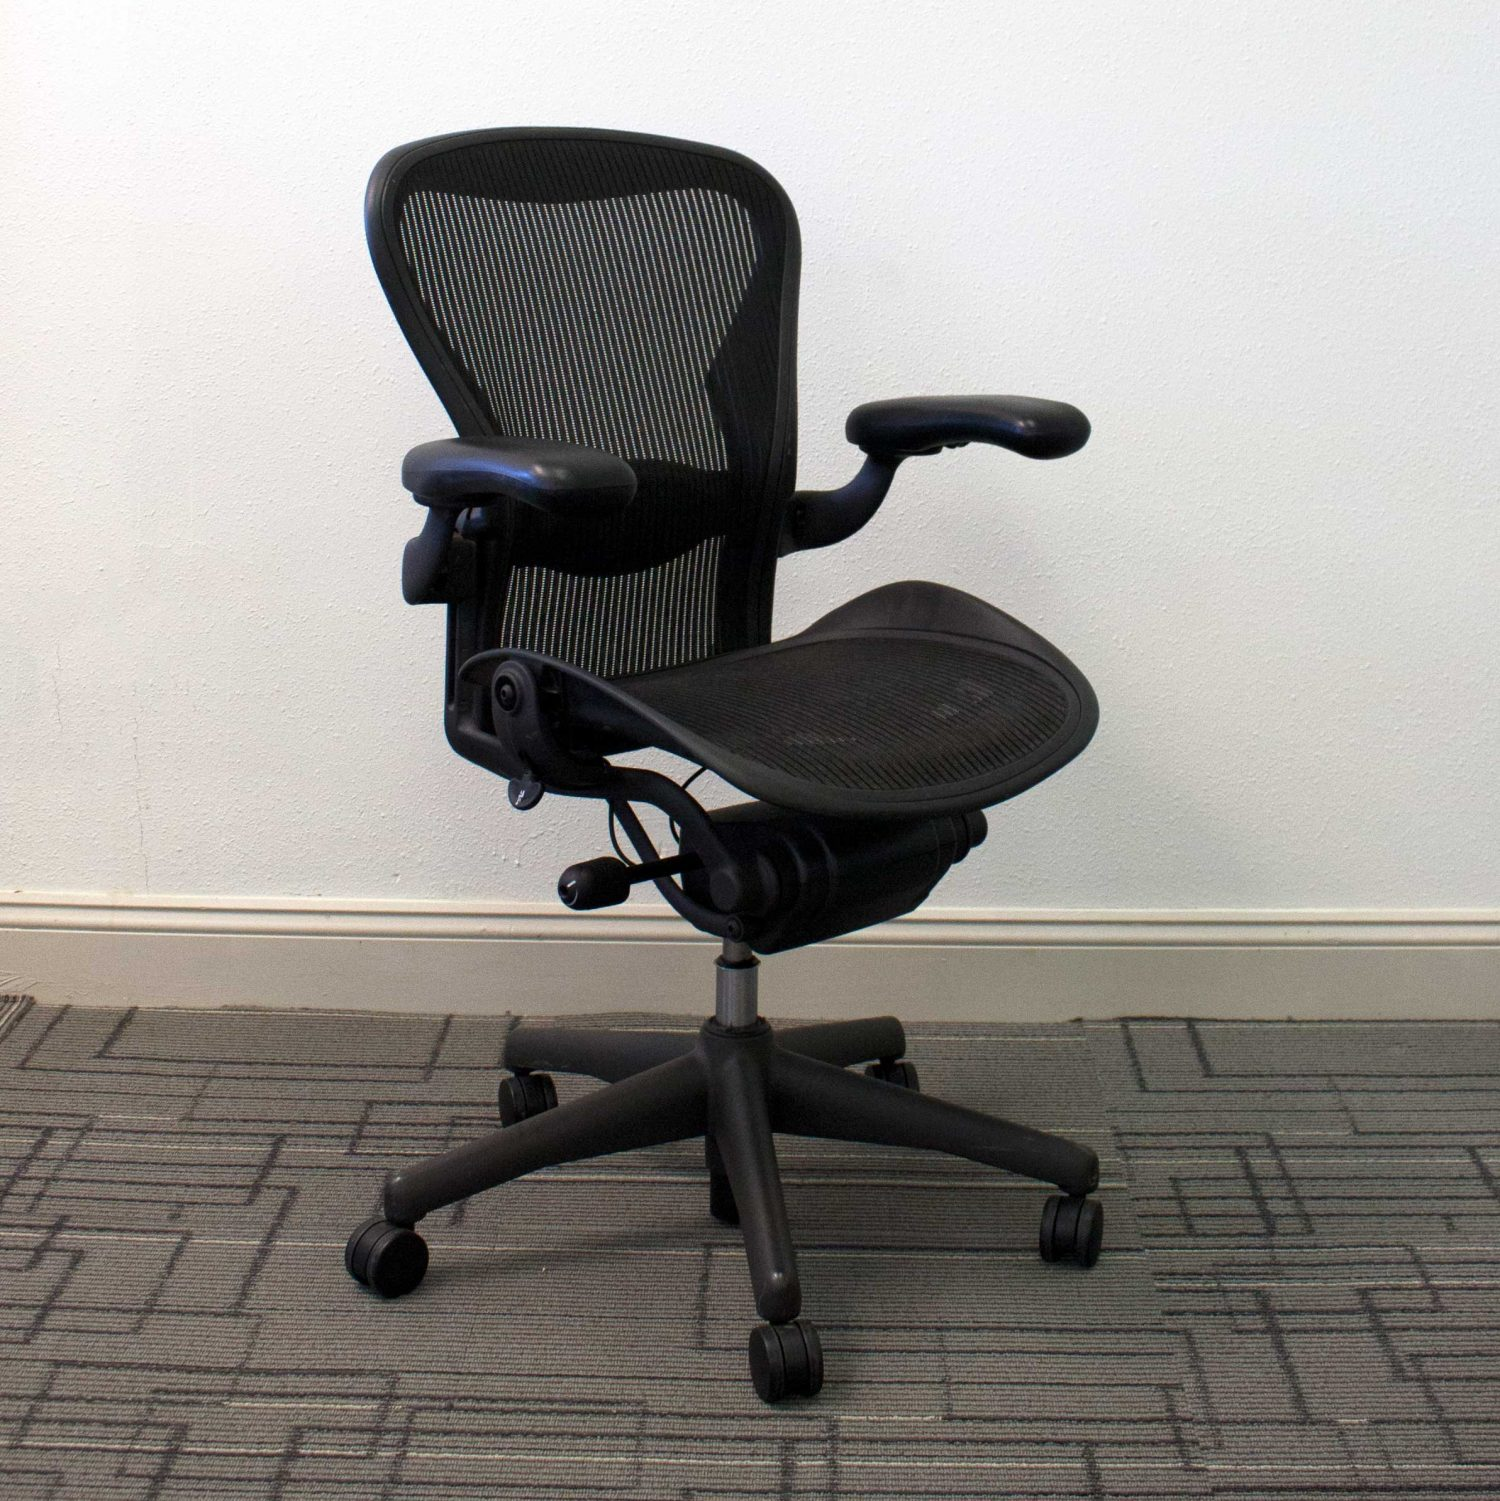 Used Herman Miller Aeron Chairs Size B Vision Office